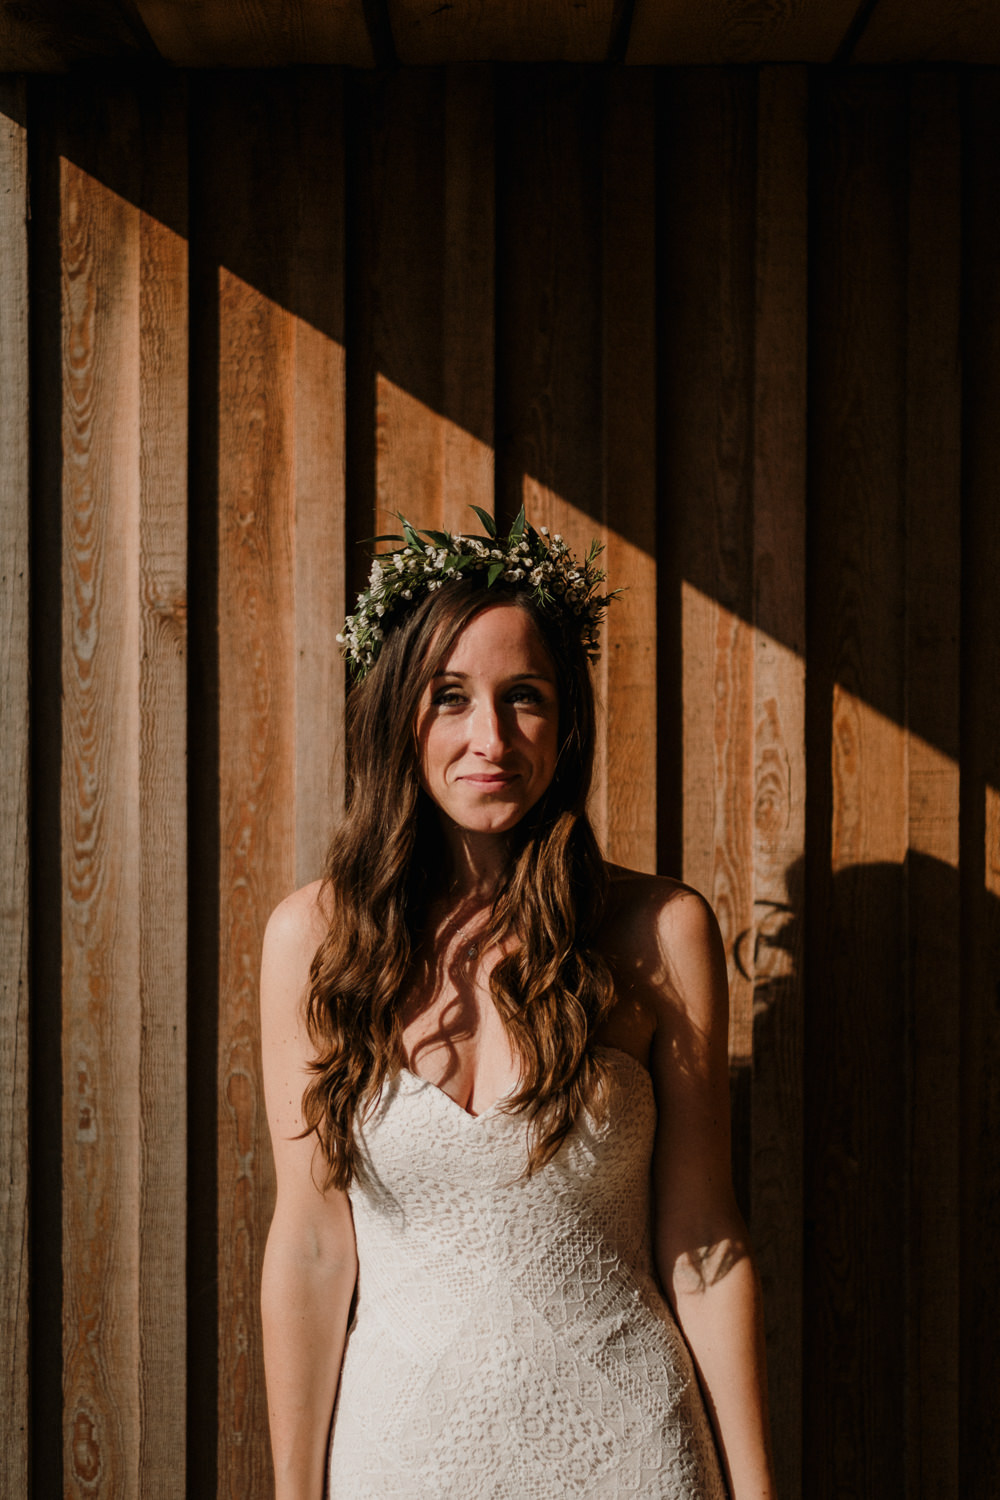 Bride Bridal Sweetheart Fit and Flare Dress Gown Greenery Wax Flower Crown Casterley Barn Wedding Stuart Dudleston Photography